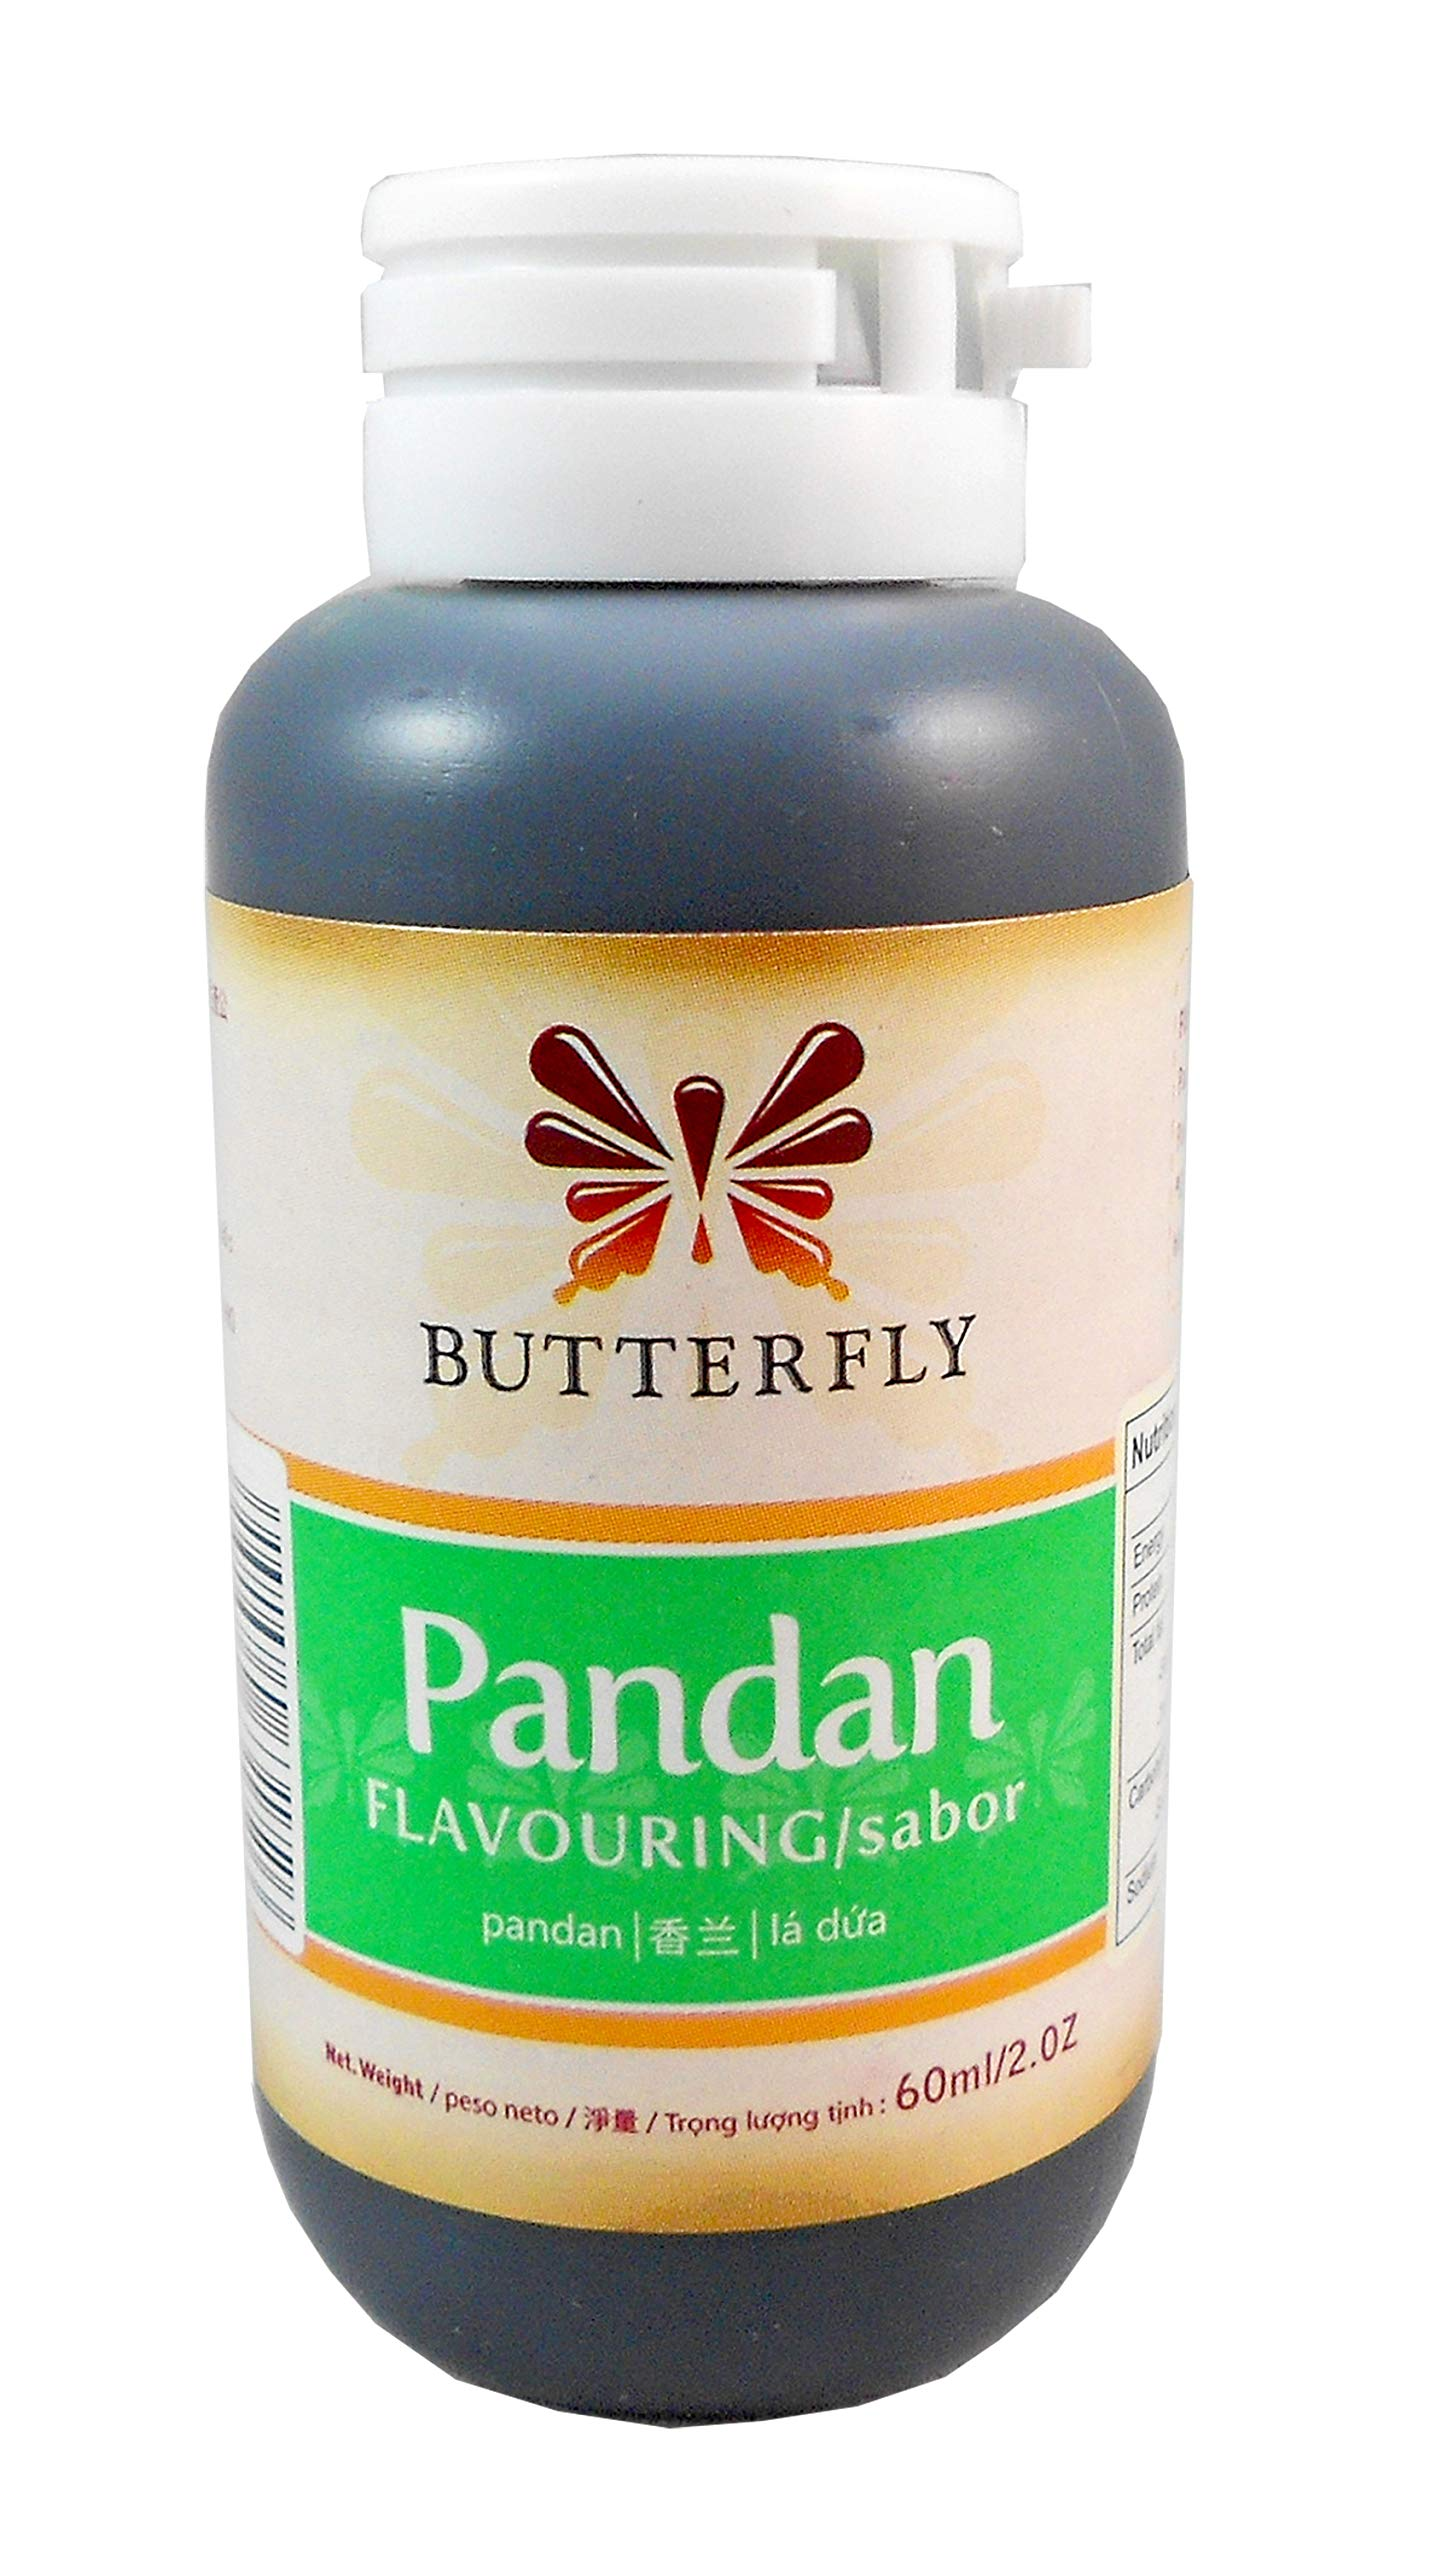 BUTTERFLY pandan flavouring (sabor) - 60ml/2 oz.